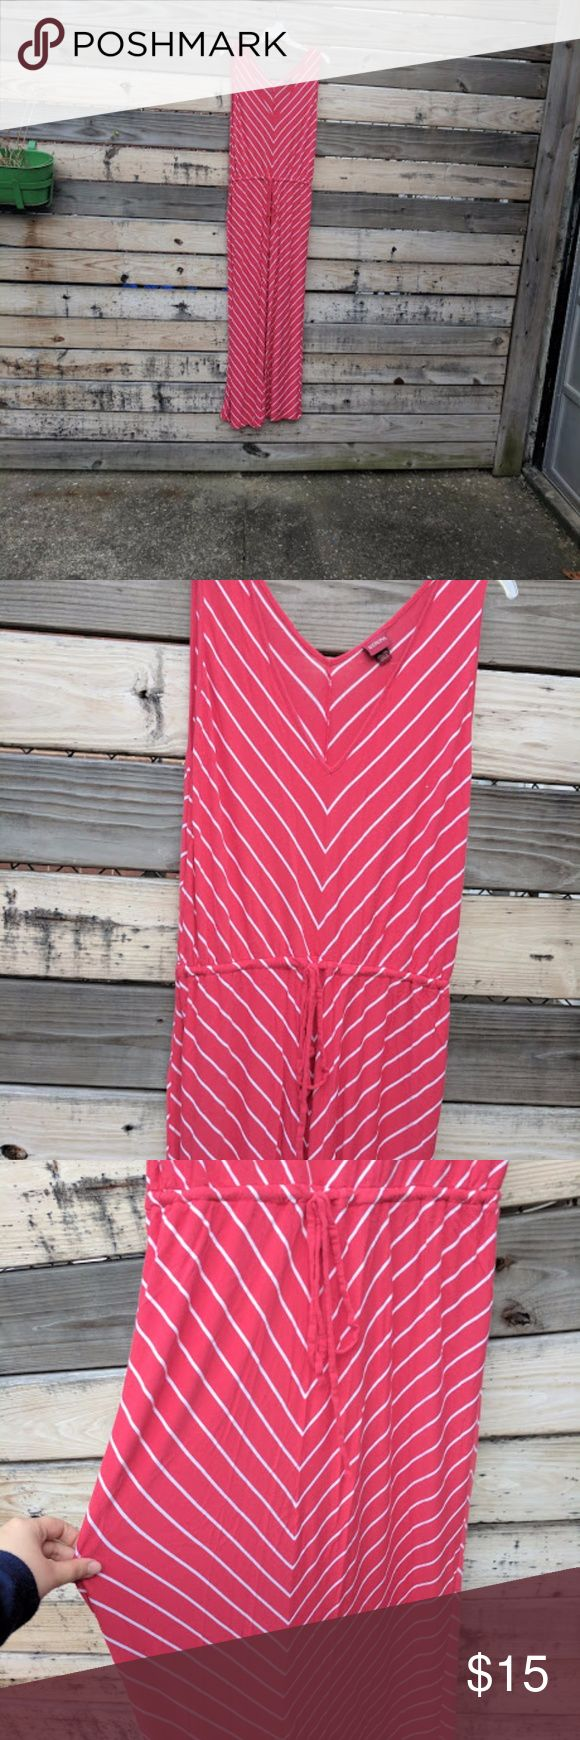 "Merona Red and White Chevron Maxi Dress Size XXL Red and white chevron tank maxi dress. The waist has a drawstring.  Measurements Bust: 44"" Waist: 34"" (as tied right now, can be made looser or tighter) Bust length: 16"" Skirt length: 40"" Merona Dresses Maxi"